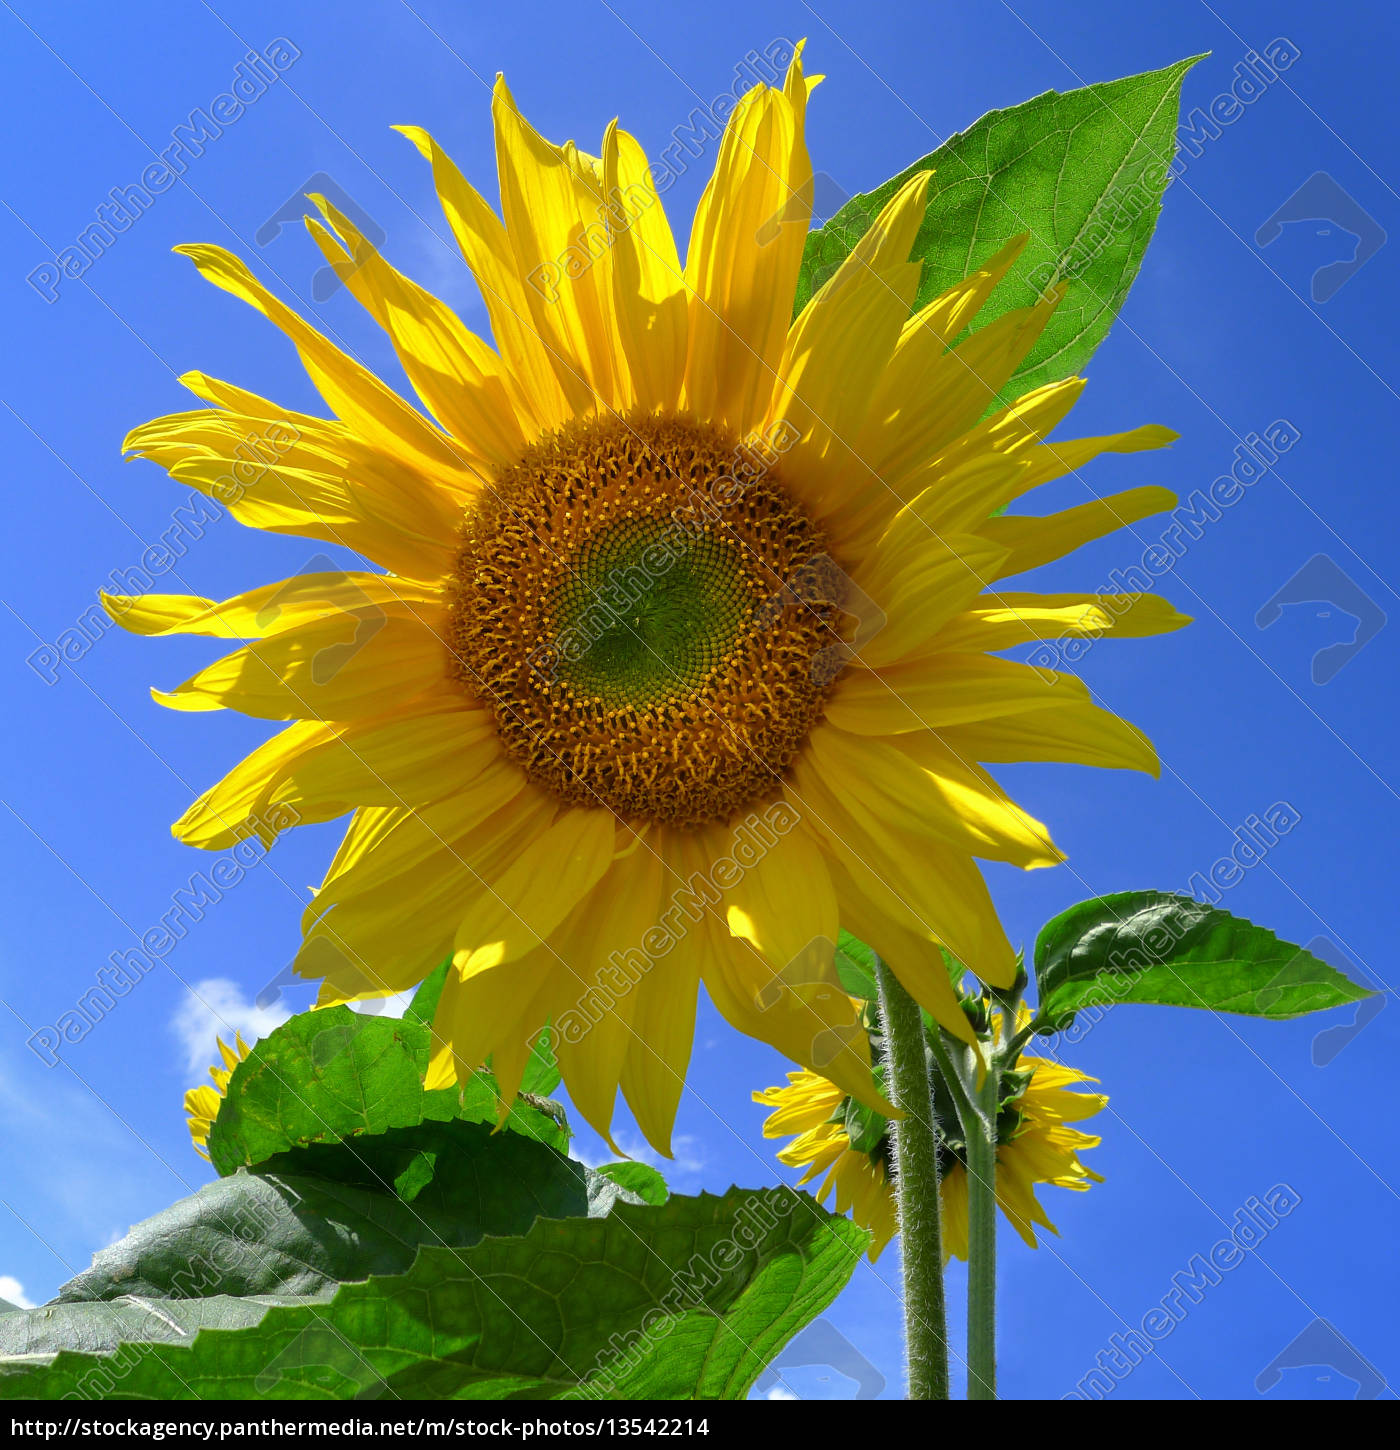 young, sunflower, against, a, blue, sky - 13542214